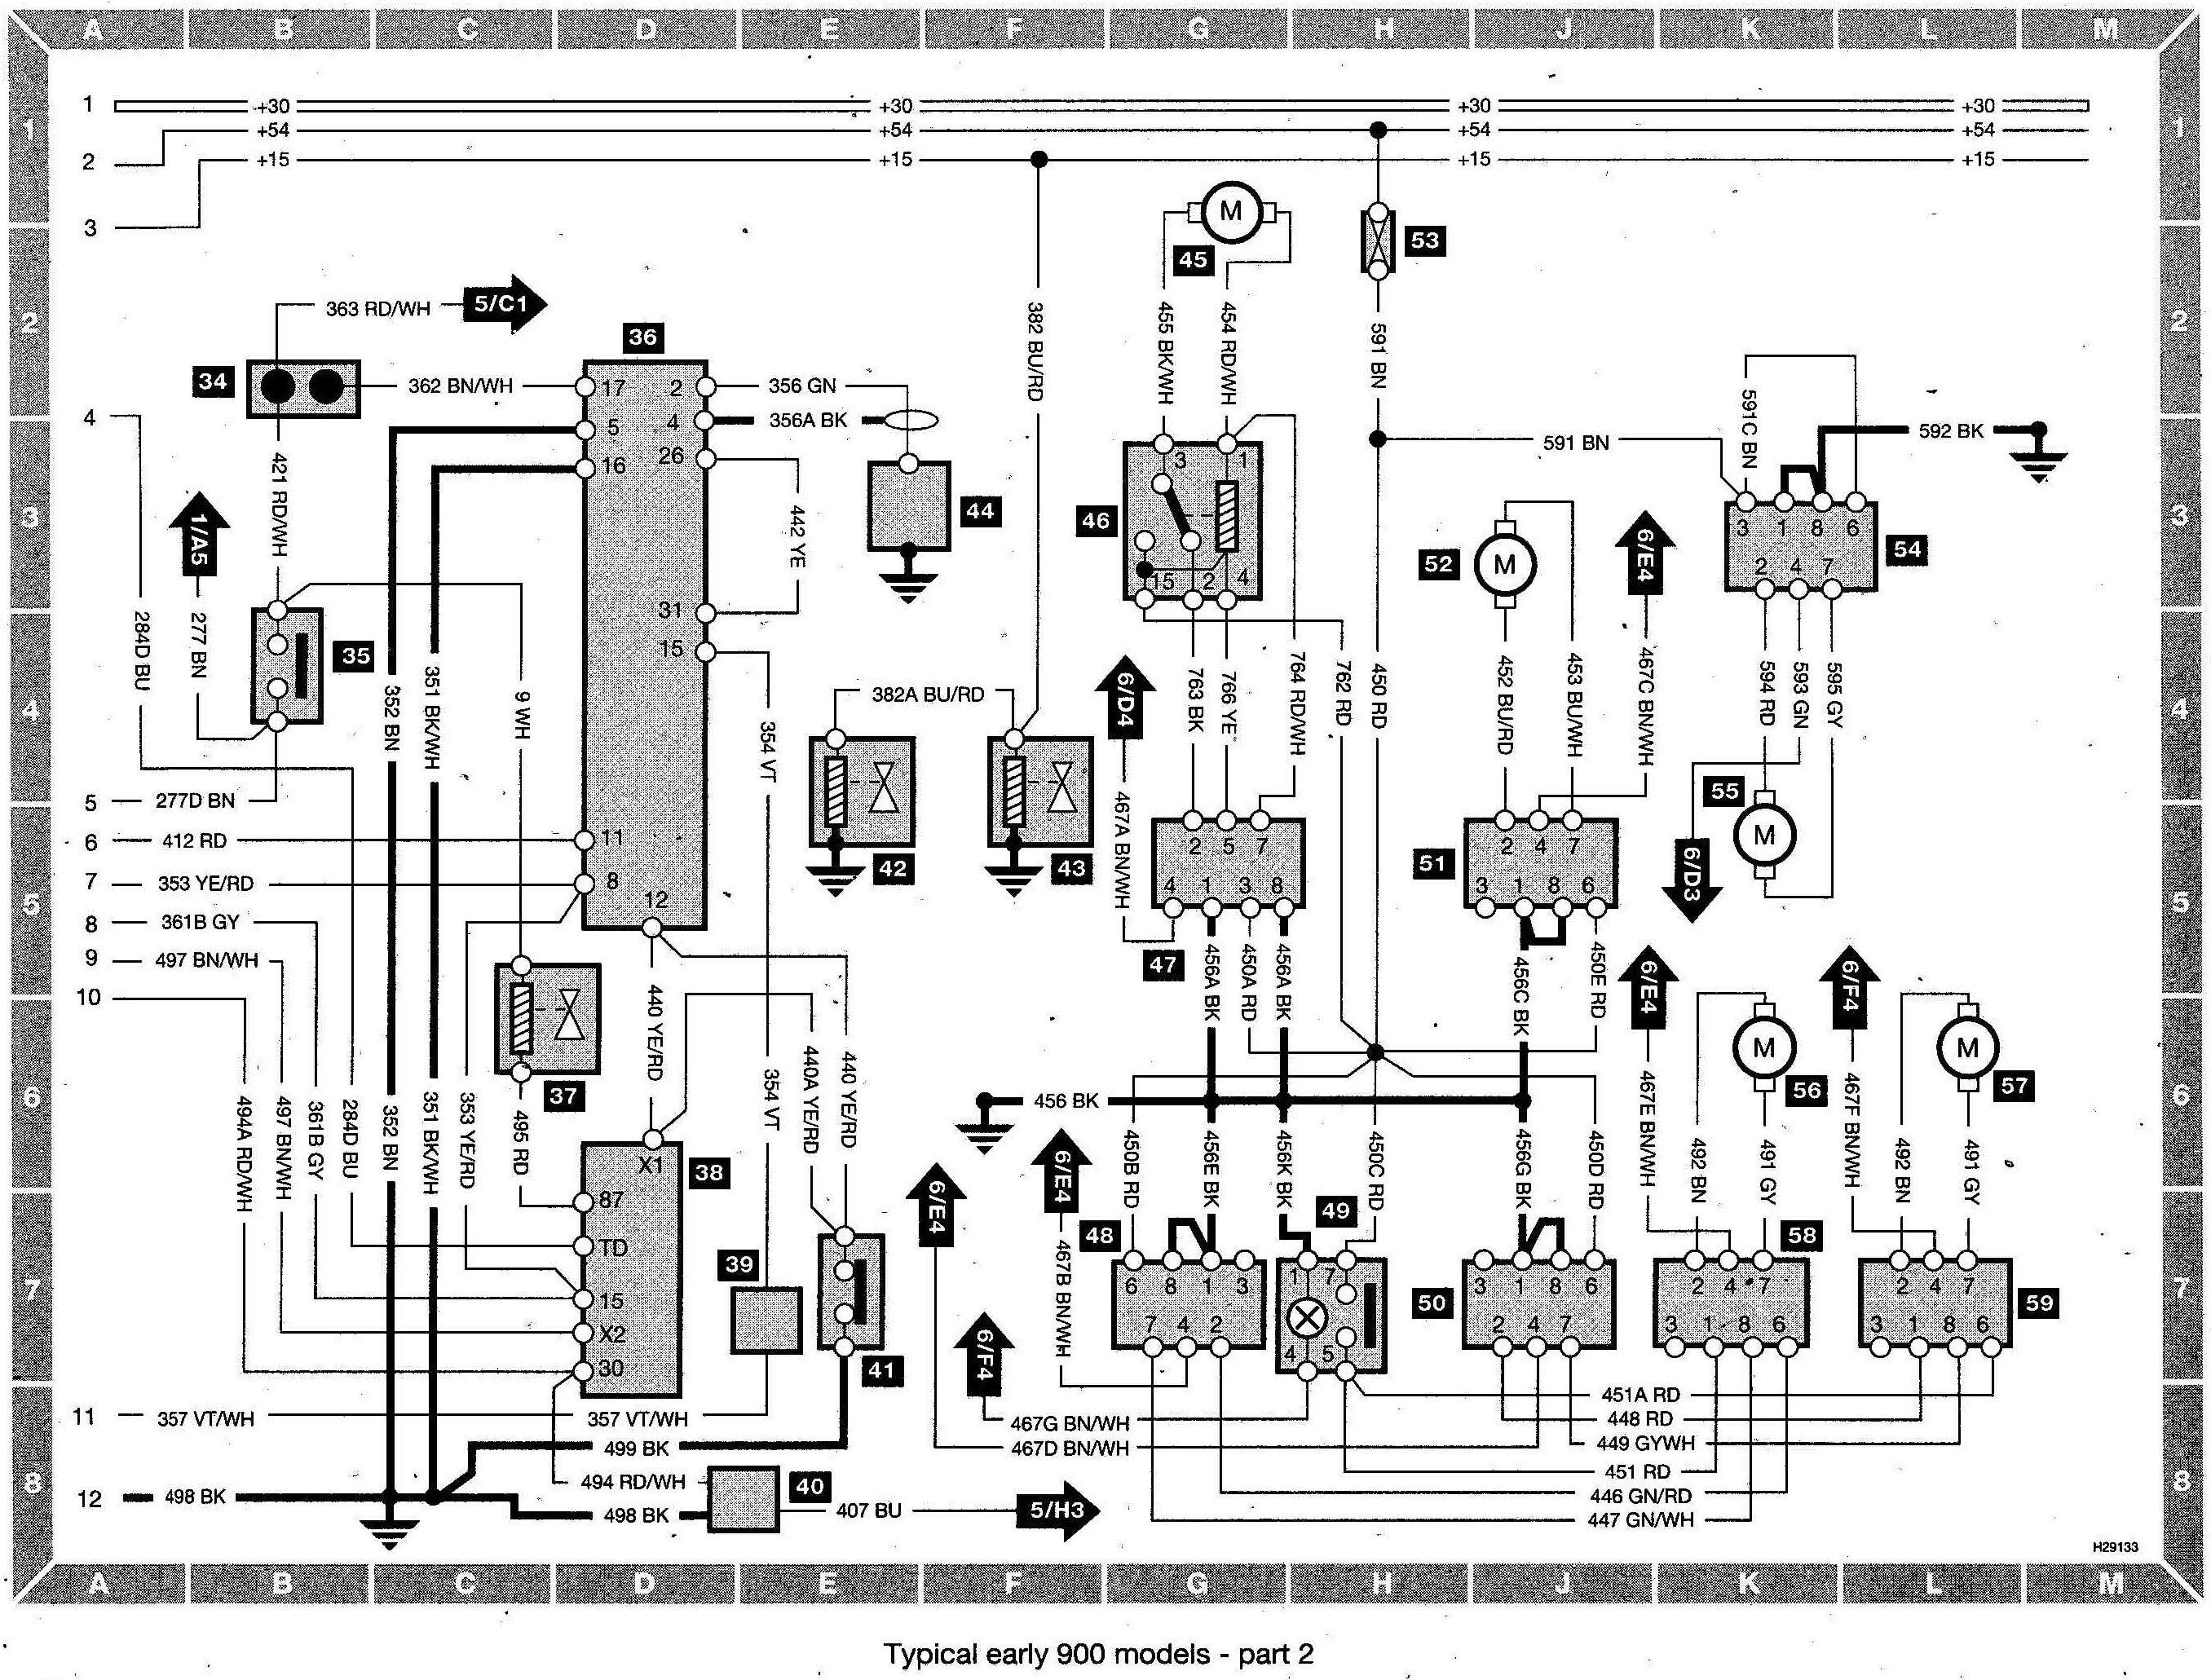 saab turbo diagram wiring diagrams saab 900 turbo vacuum diagram saab turbo diagram [ 2712 x 2061 Pixel ]